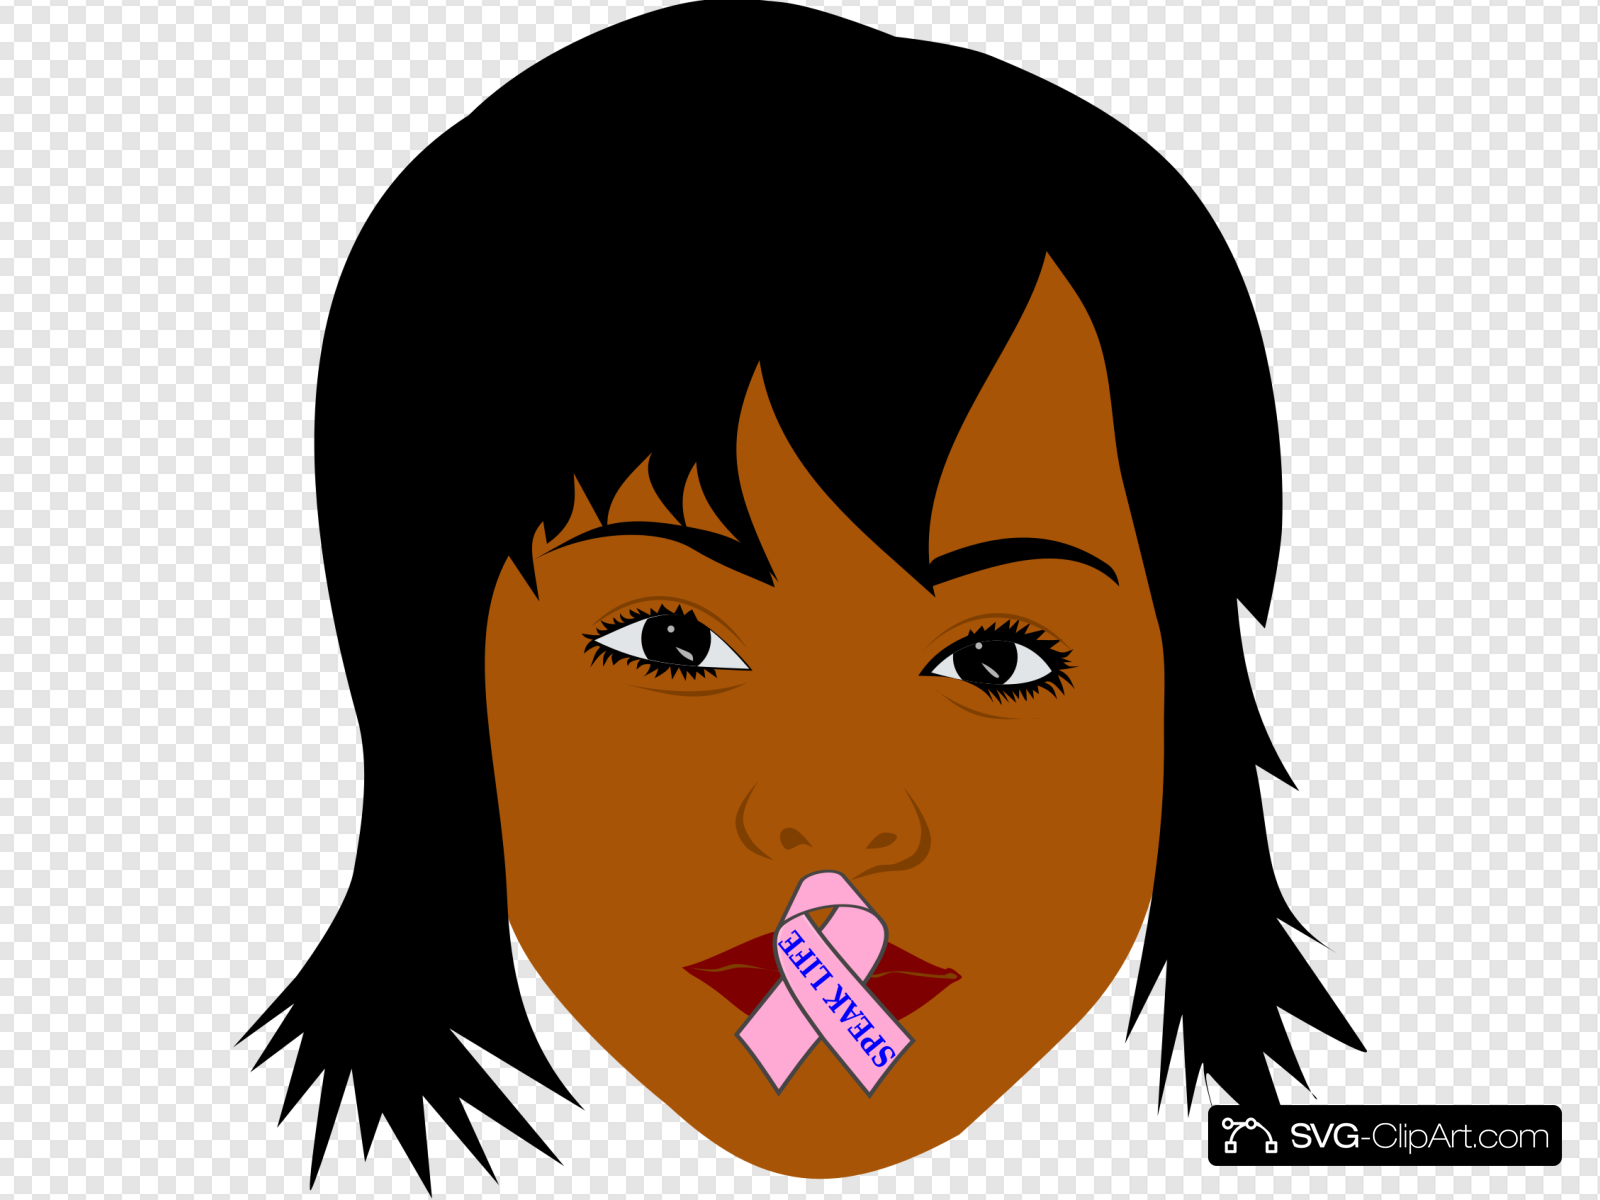 African American Woman Speak Life Clip art, Icon and SVG.